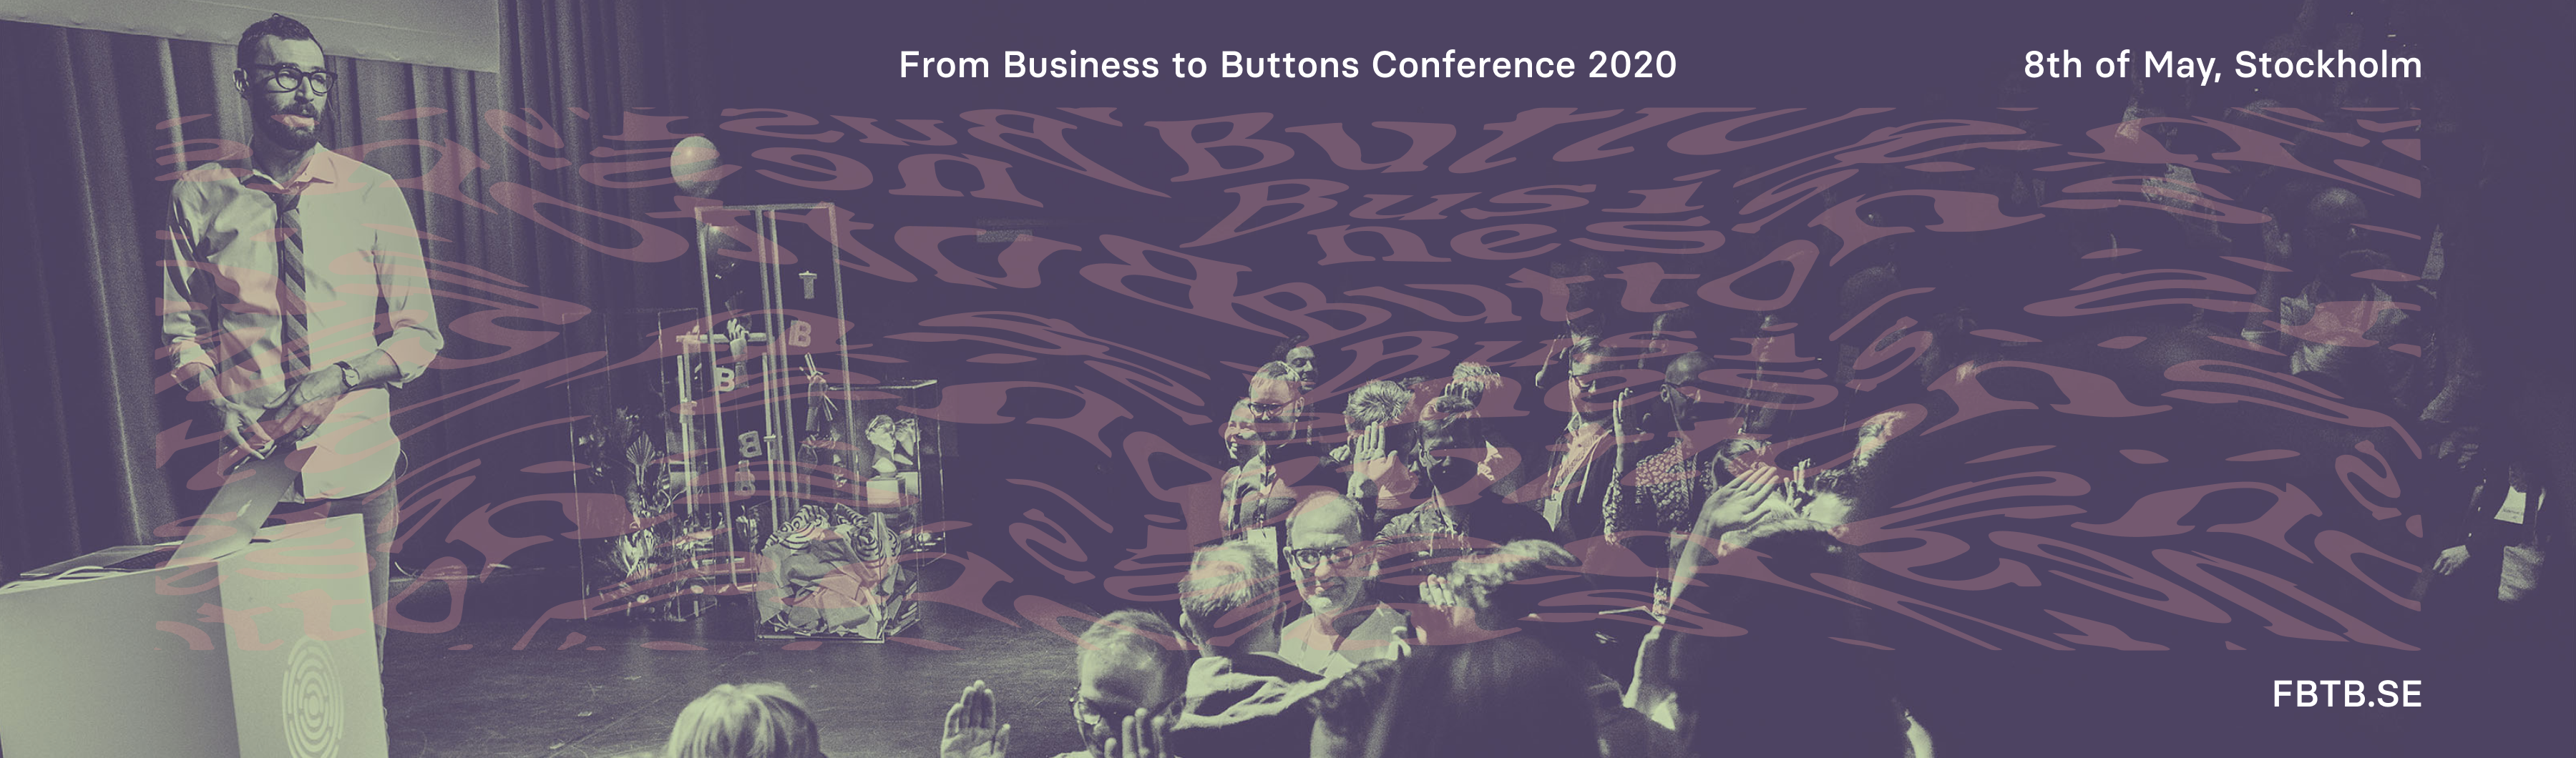 From Business to Buttons 2020